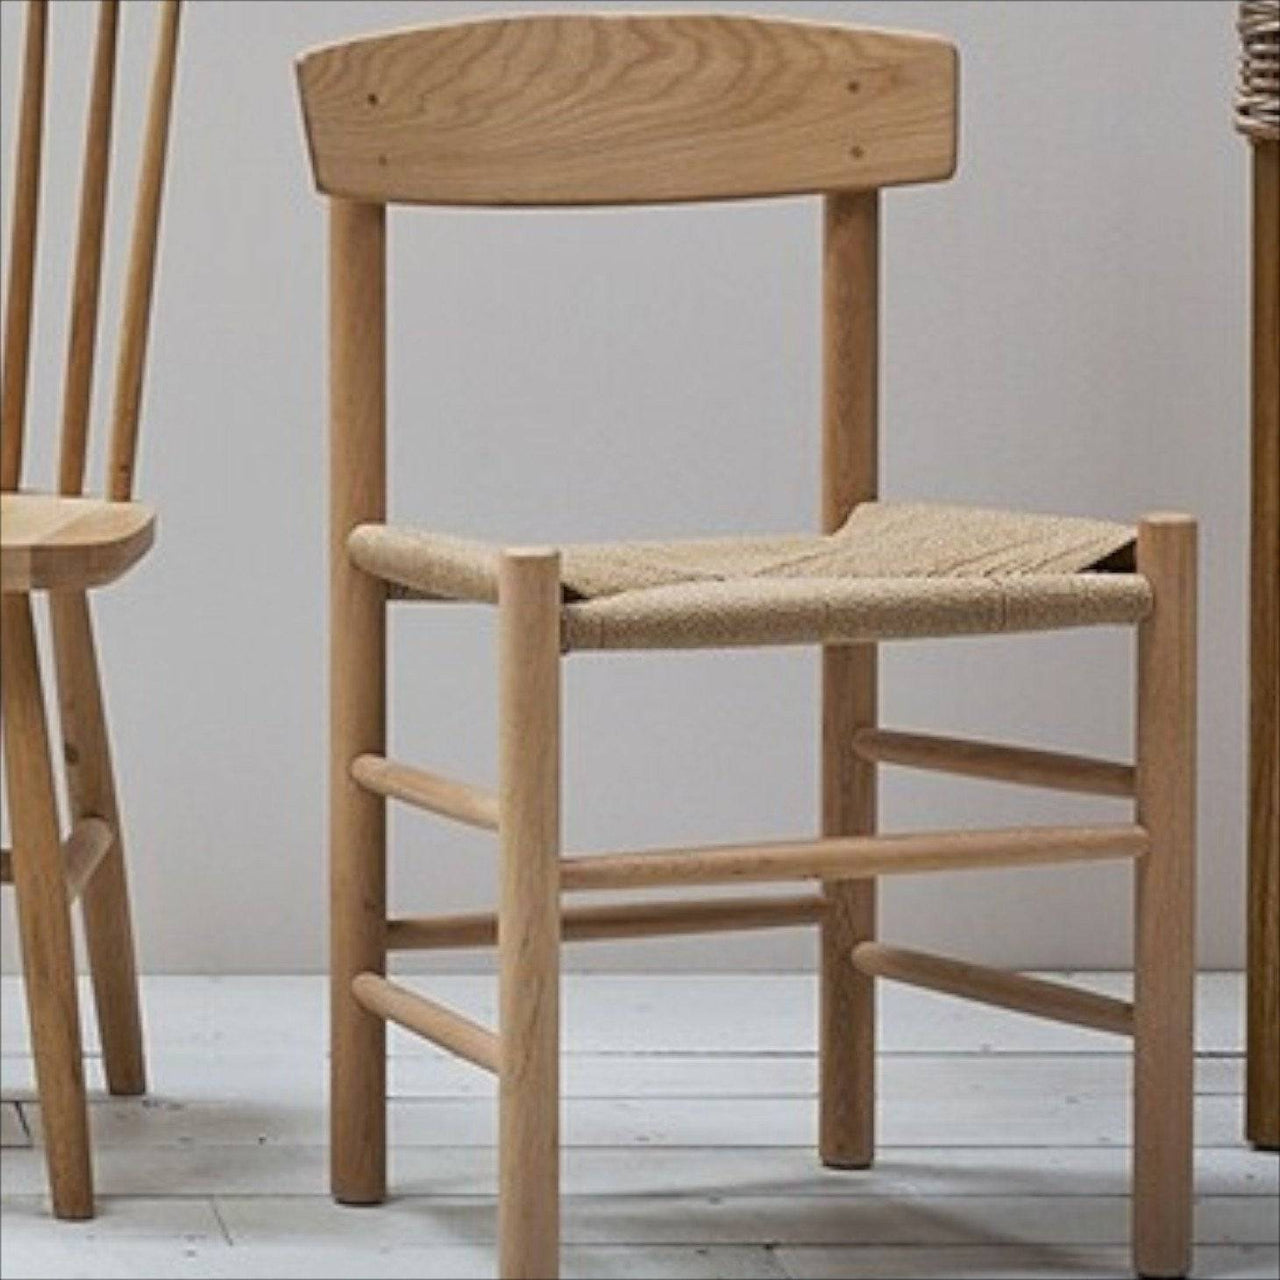 Oak & Jute Chair-Furniture & Lighting-Garden Trading-Brassica Mercantile